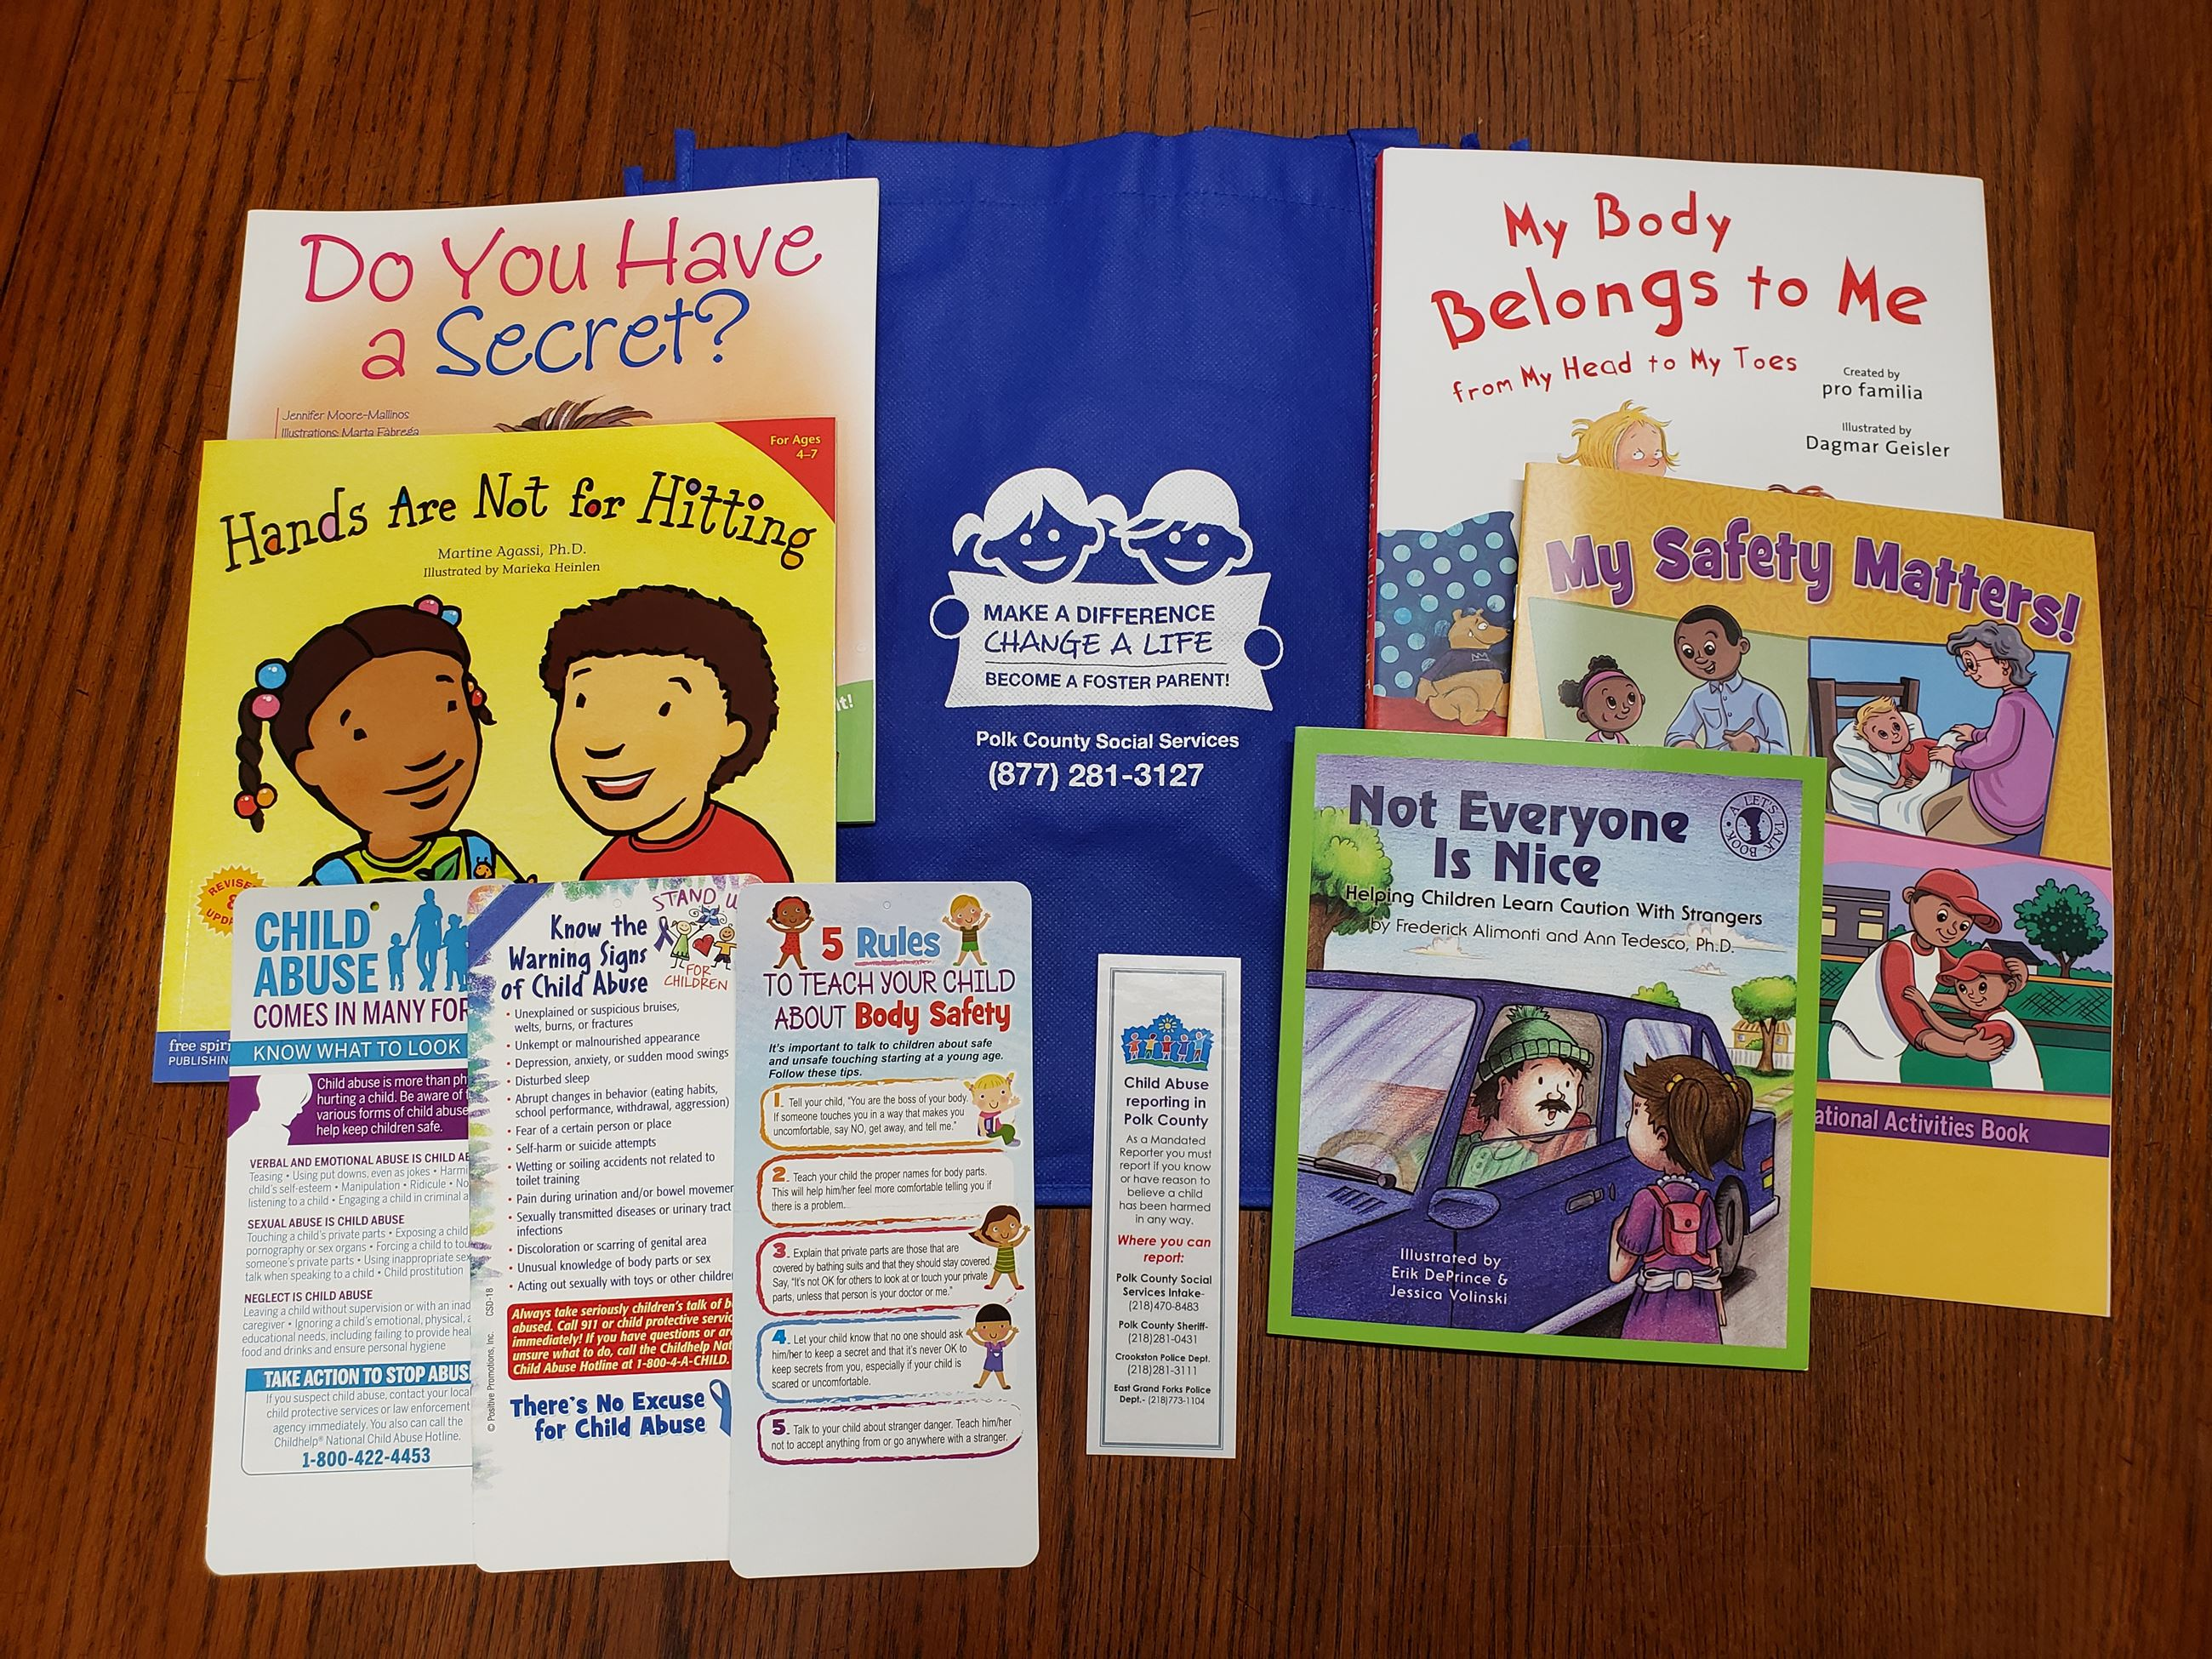 Daycare Child Abuse Resources